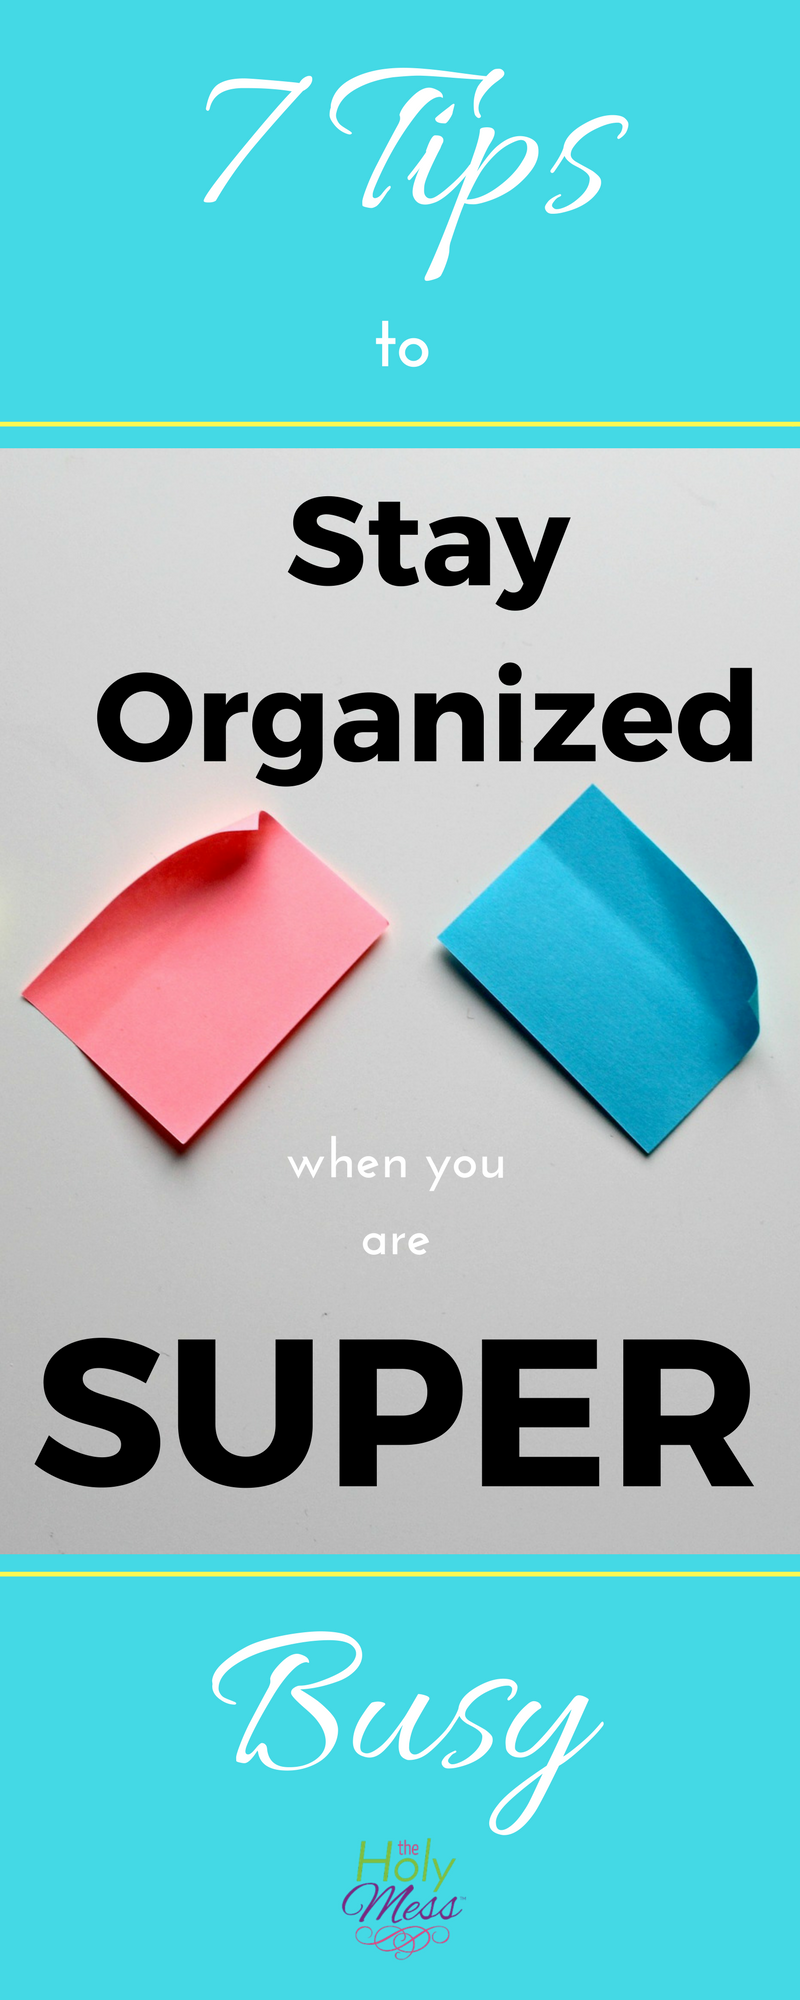 home office ideas 7 tips. 7 Tips To Stay Organized When You Are Super Busy|Life Hacks|Organizing Ideas Home Office C